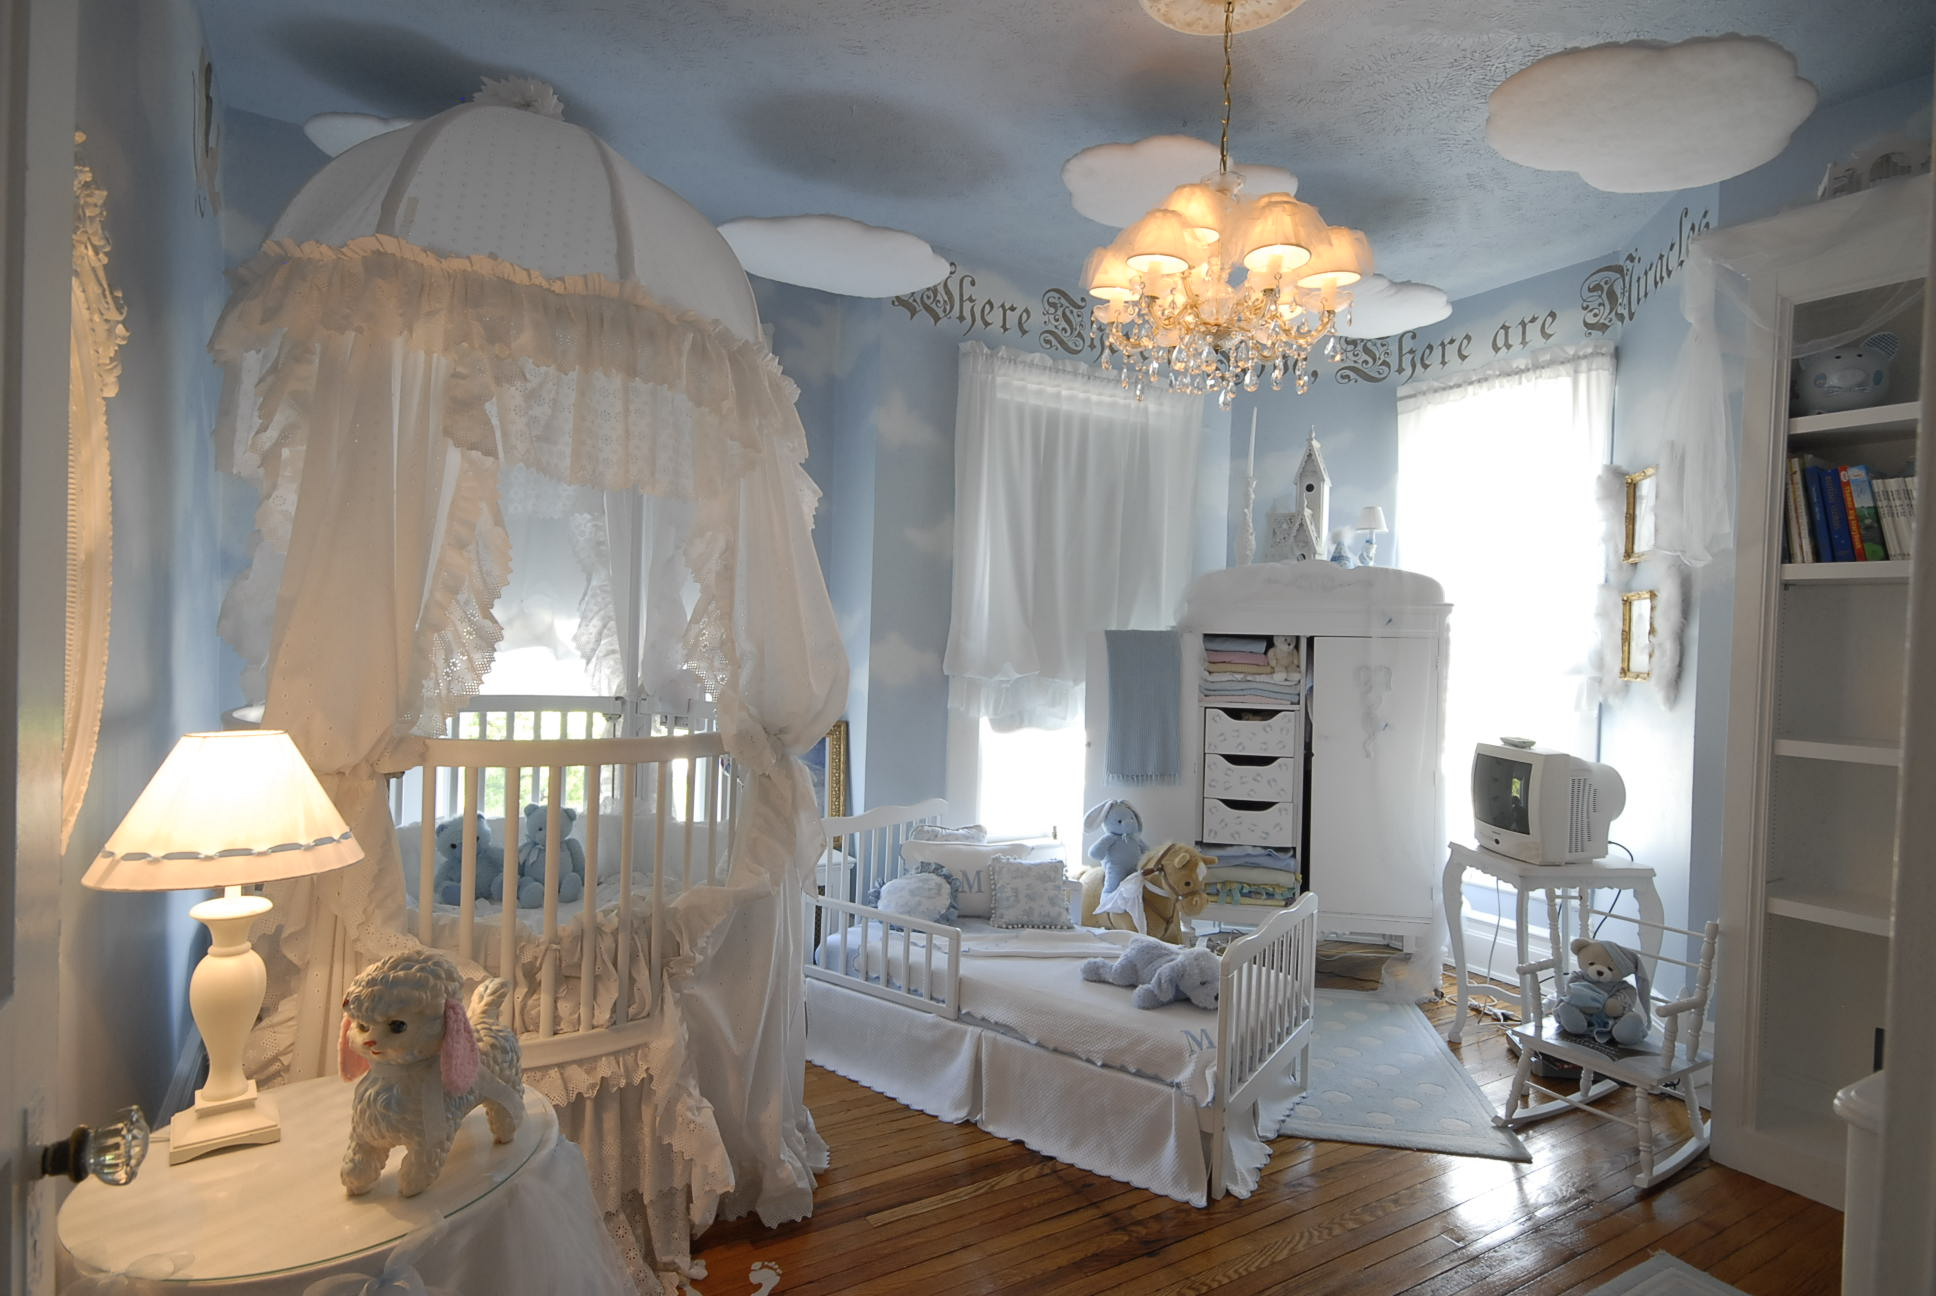 53 Images About Baby Room On We Heart It See More About Baby